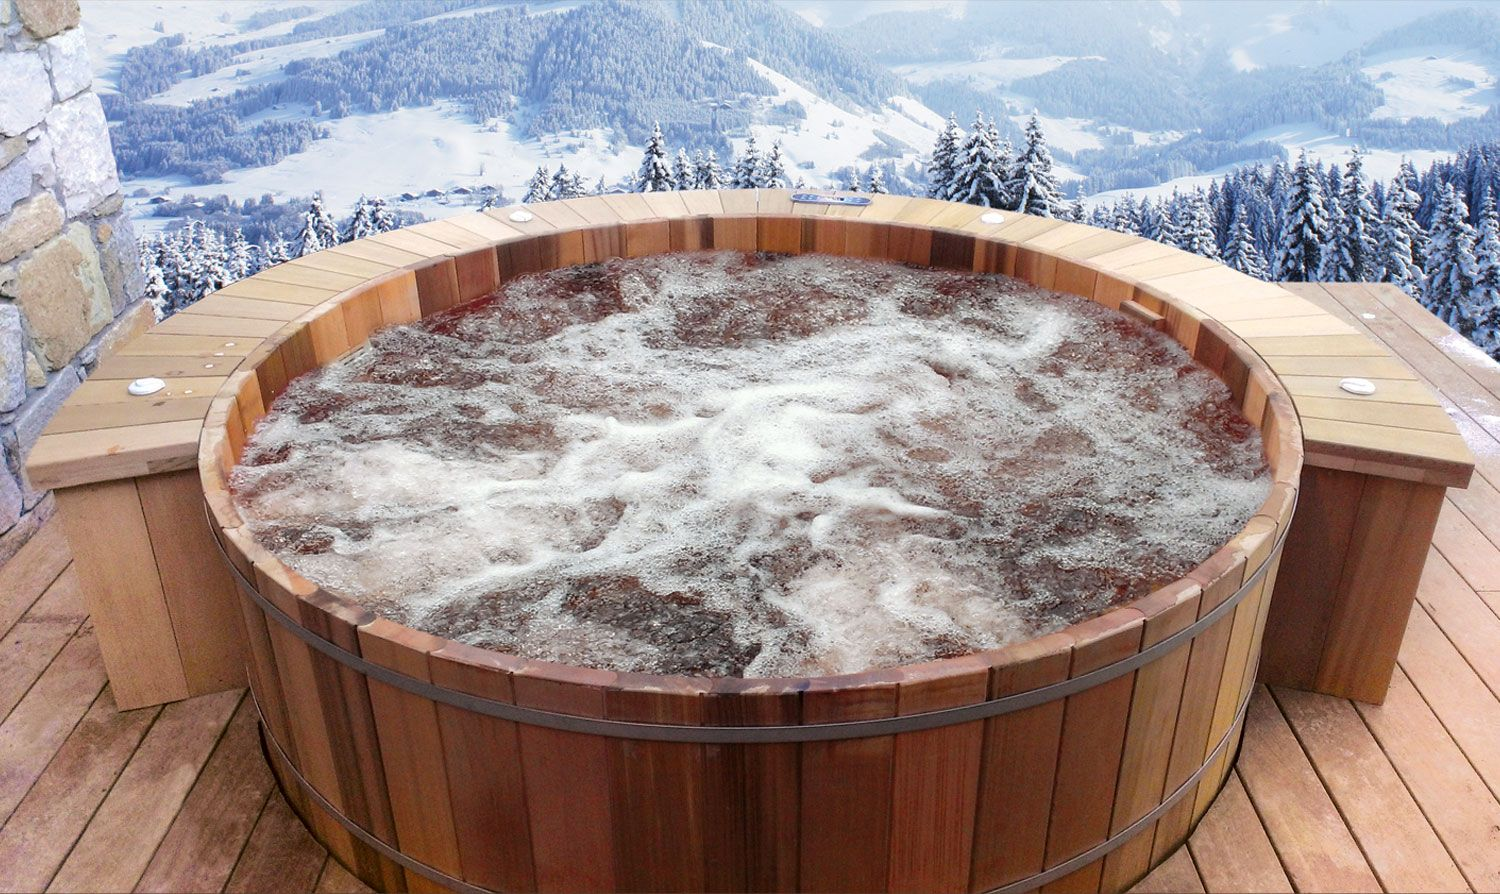 le sp cialiste du spa jacuzzi ext rieur en red cedar massif bas annecy nous intervenons sur. Black Bedroom Furniture Sets. Home Design Ideas